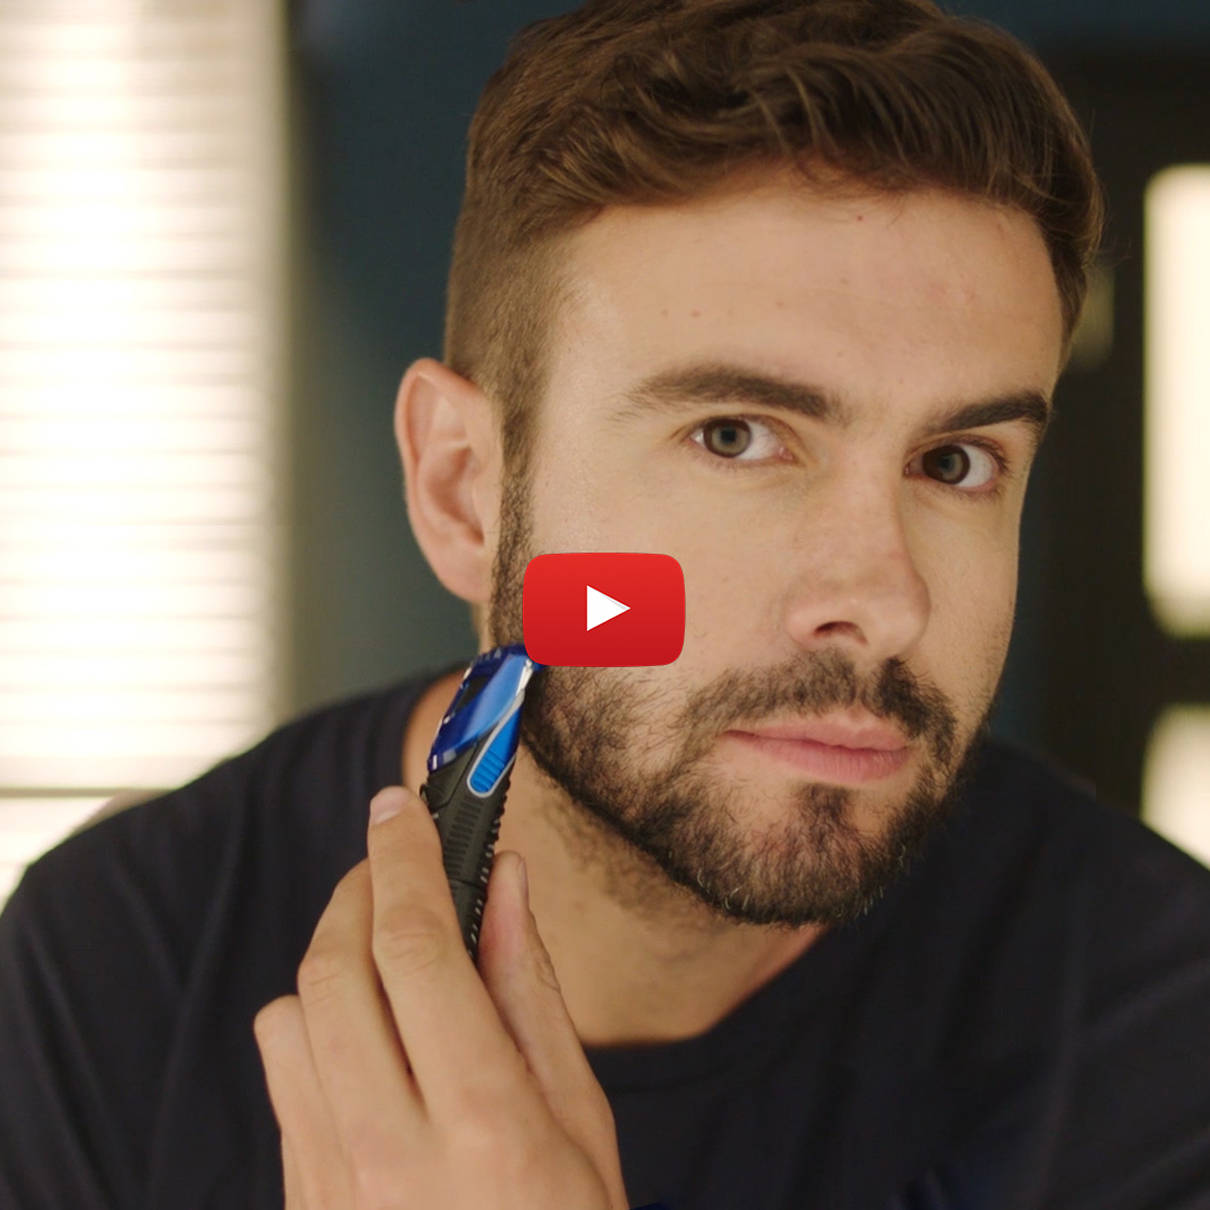 ALL PURPOSE GILLETTE STYLER VIDEO